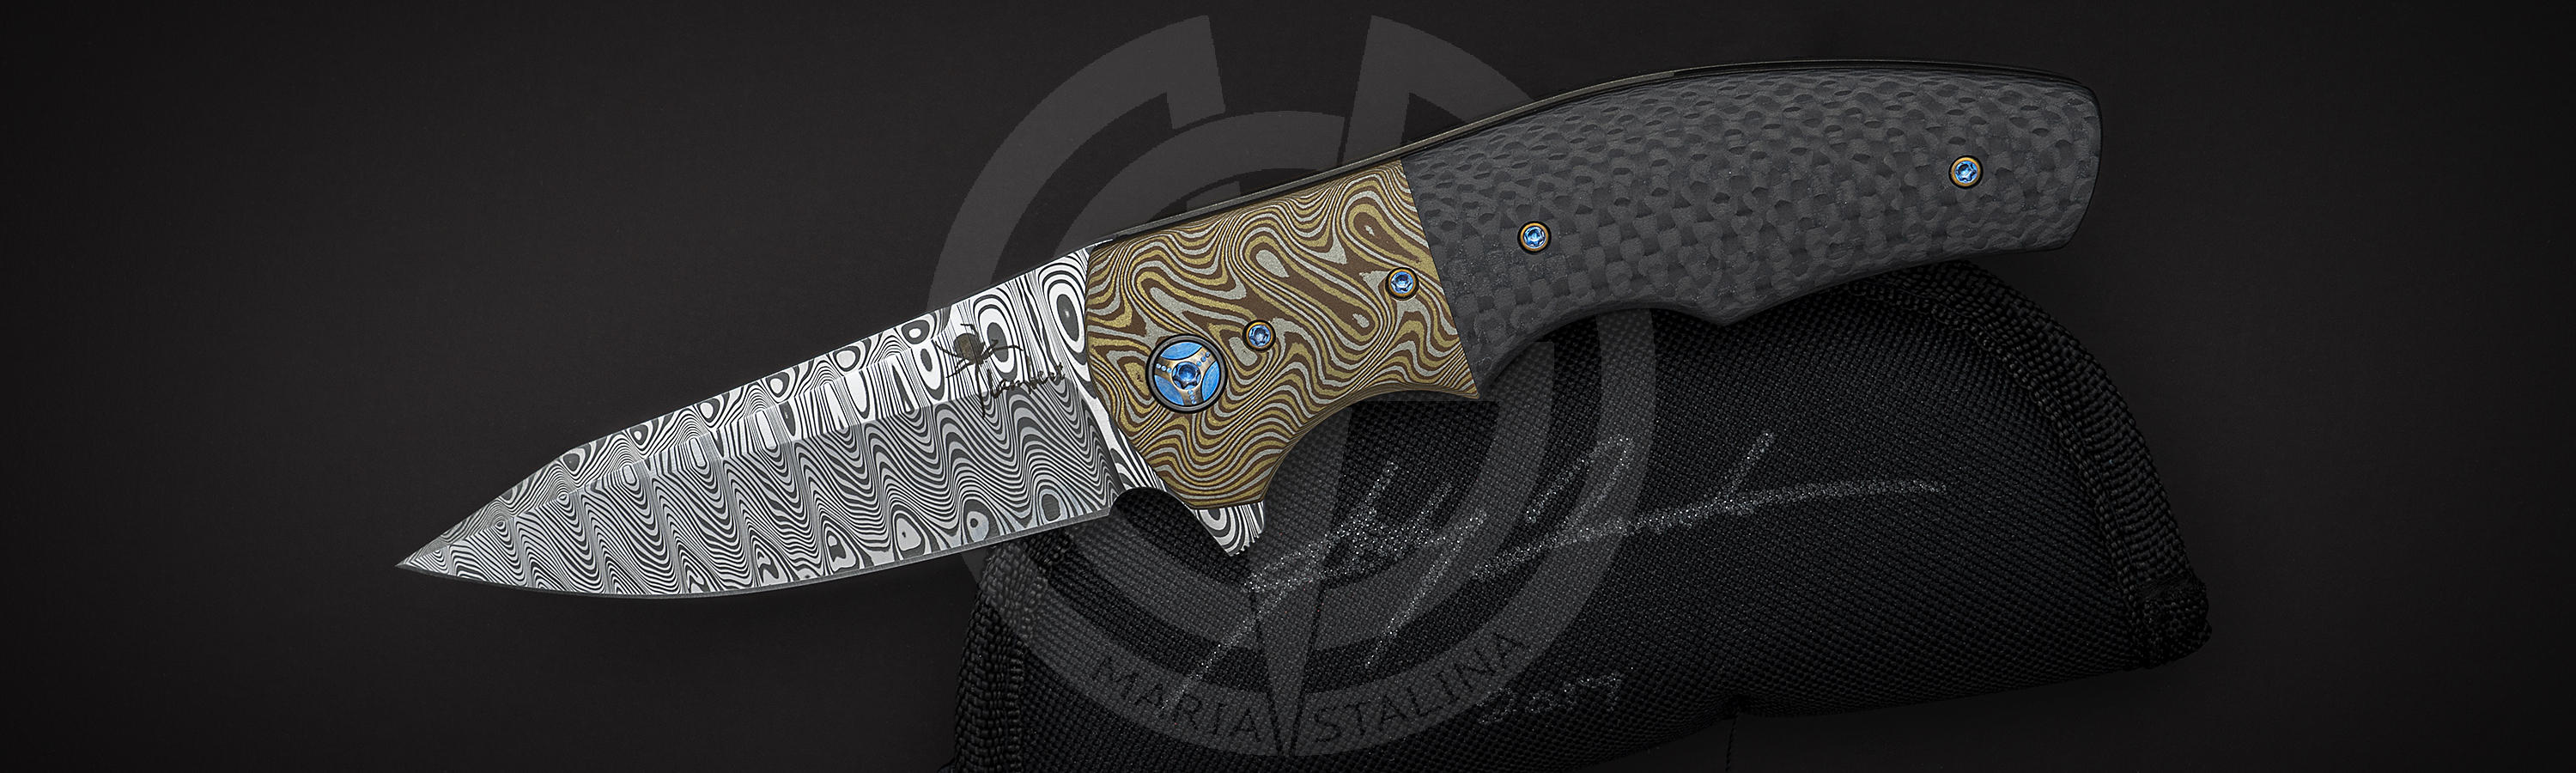 Buy Canadian flipper knife Crossroads Mokume by Kirby Lambert